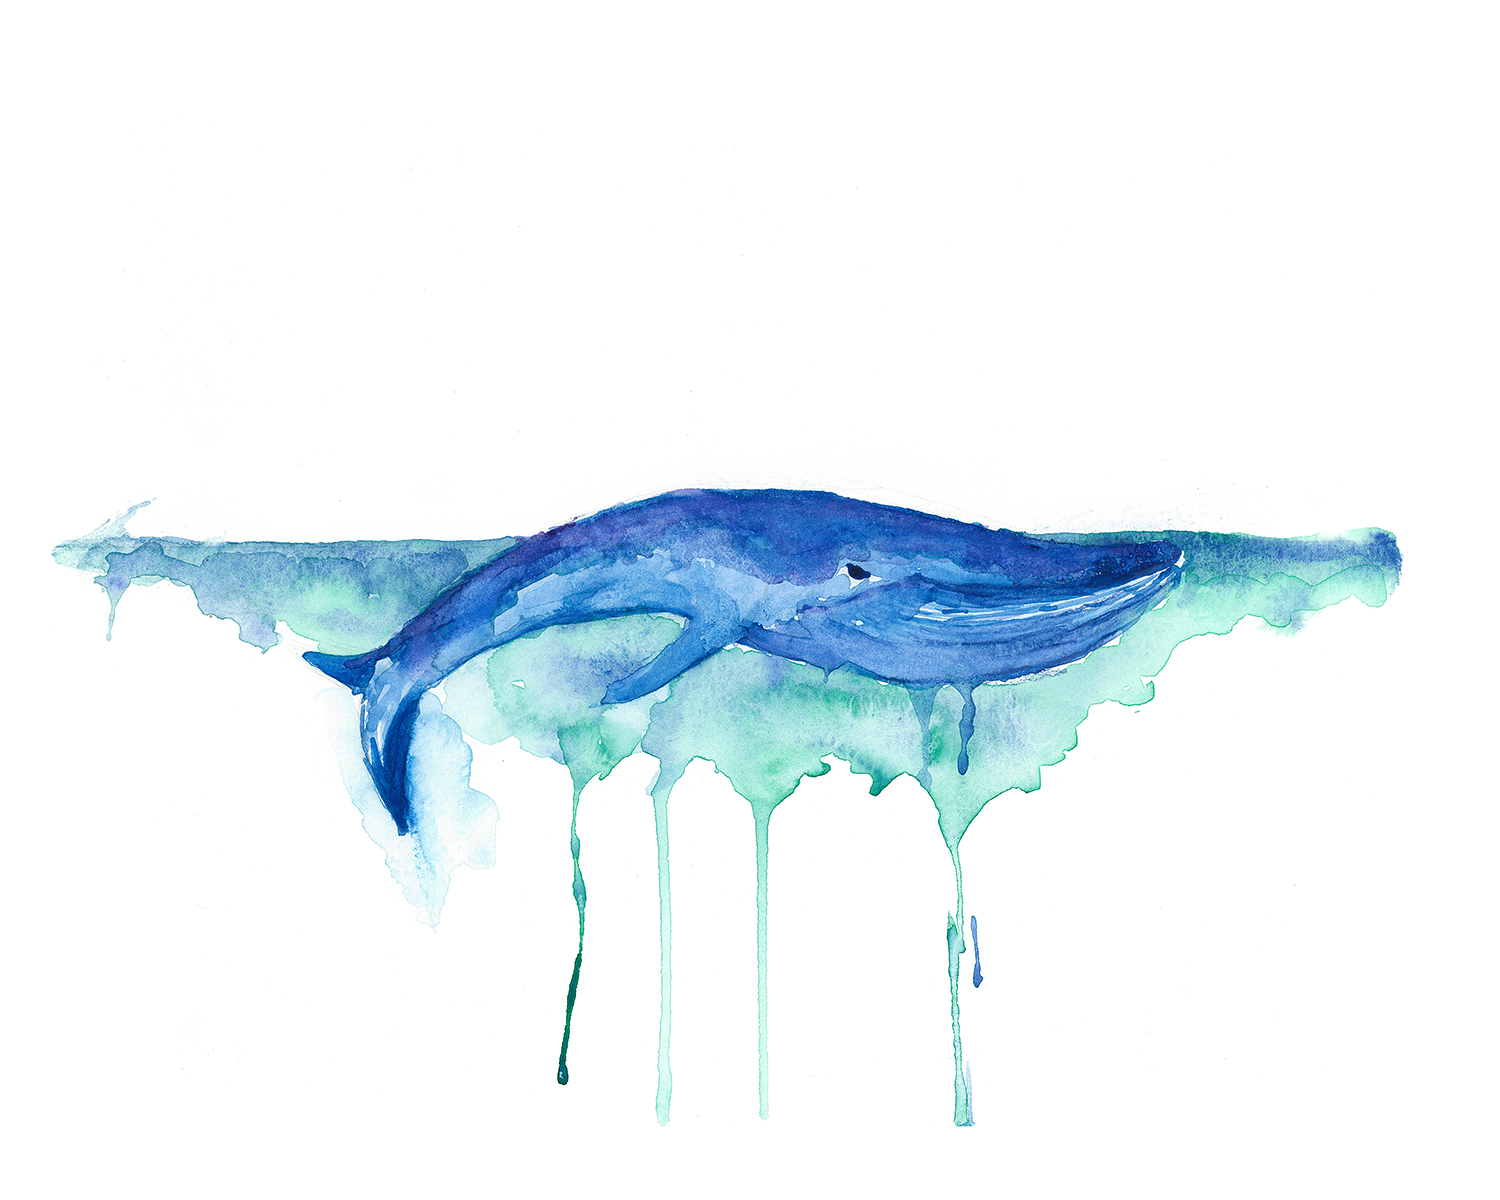 Blue Whale Watercolor Painting by EnviousV on DeviantArt